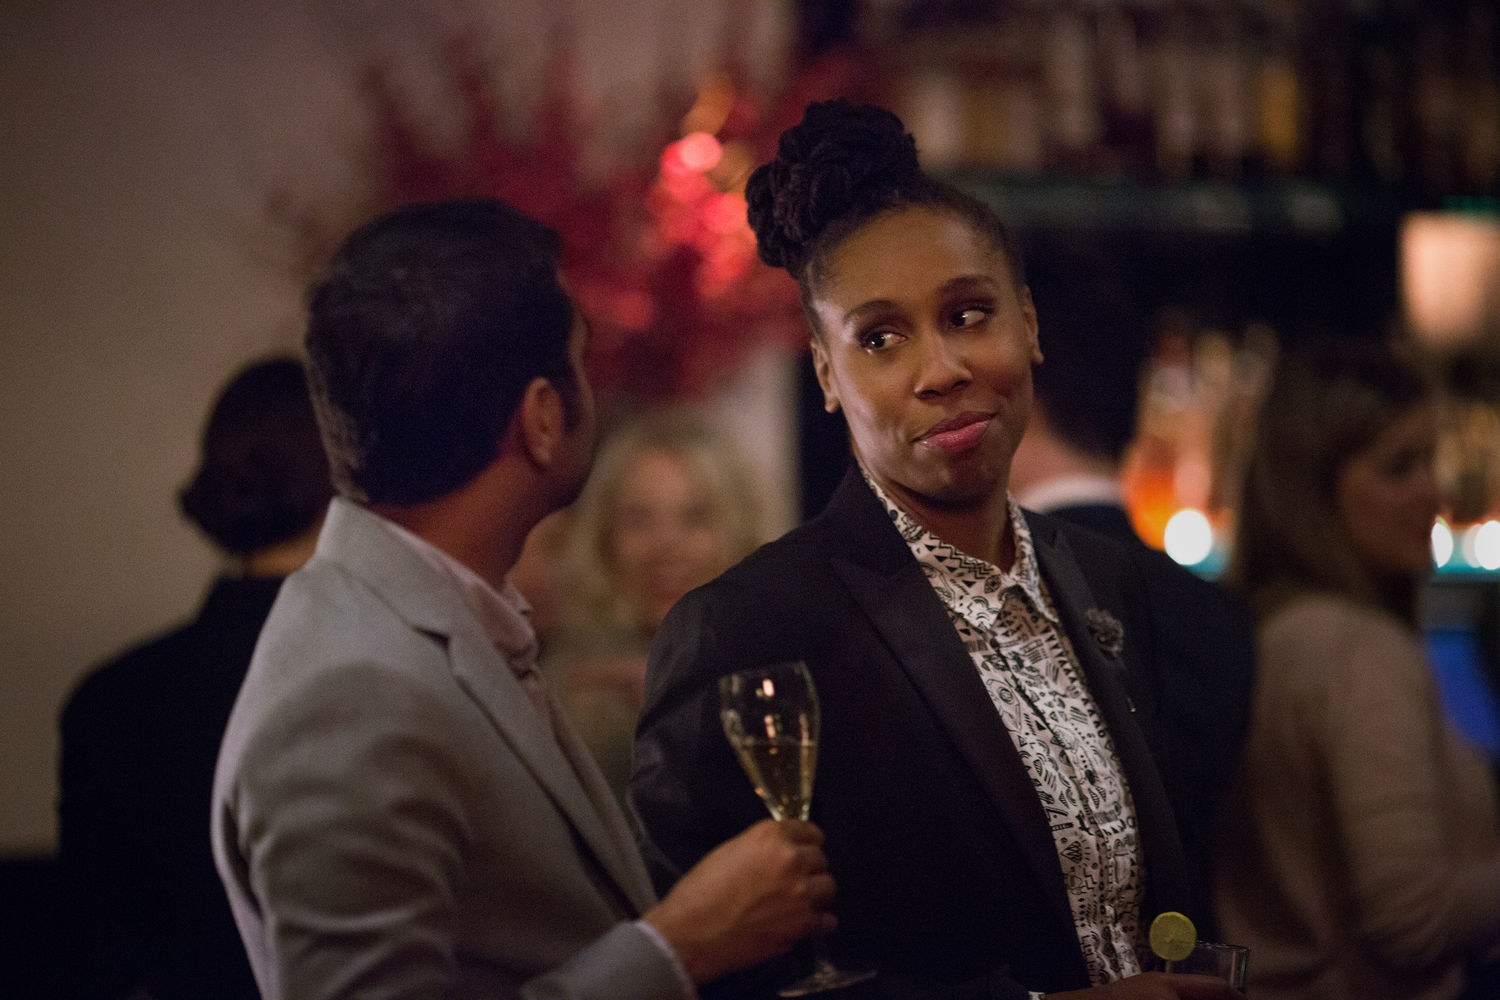 entertainment-2015-12-master-of-none-aziz-lena-waithe-main